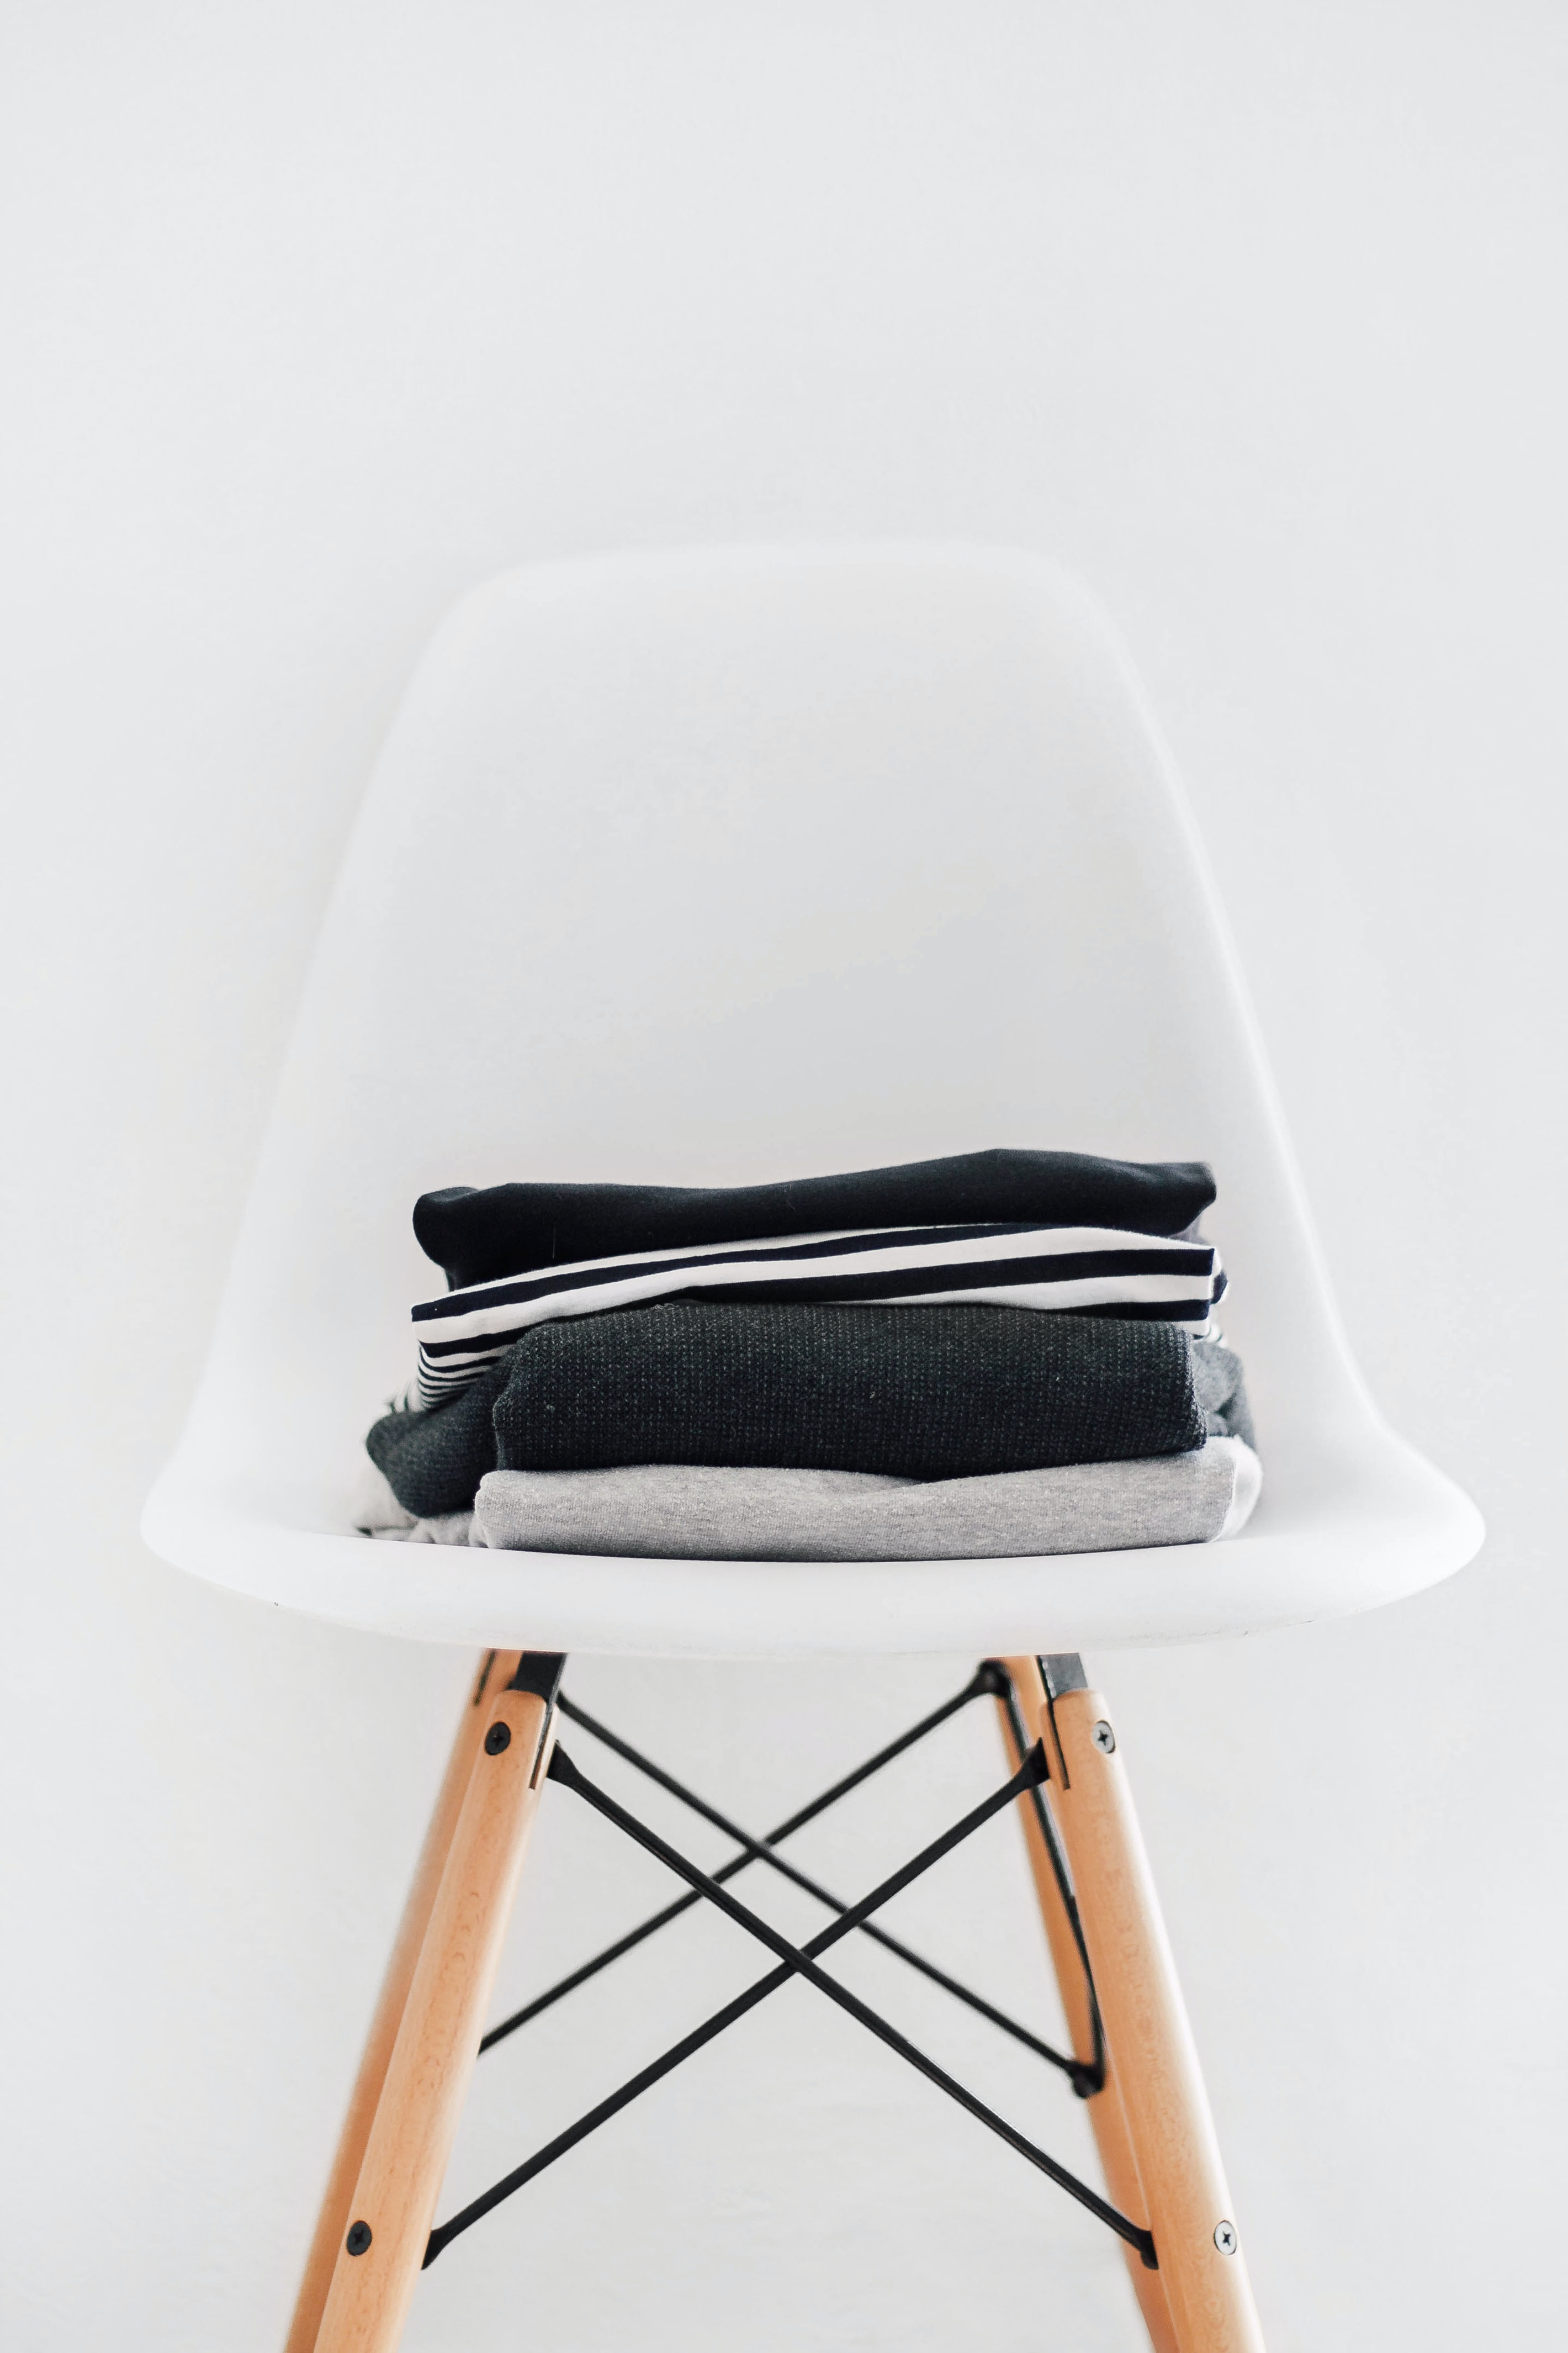 Clothing sitting on top of a white chair.